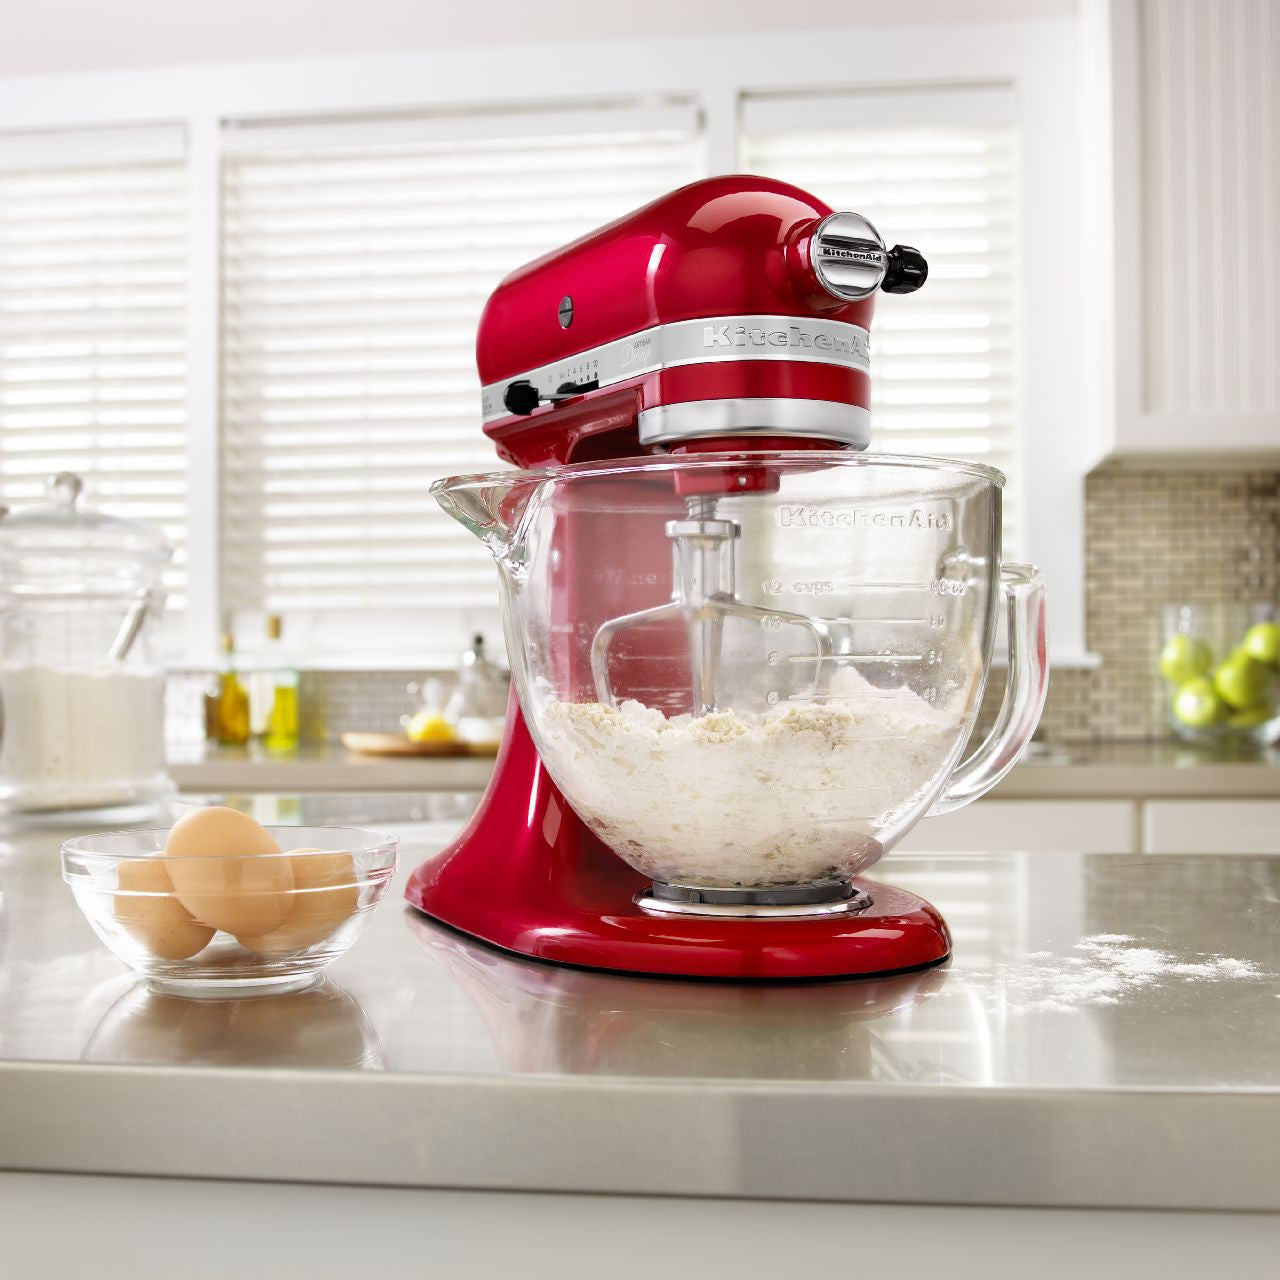 Kitchenaid 5 Qt Artisan Design Series With Glass Bowl Ksm155gb